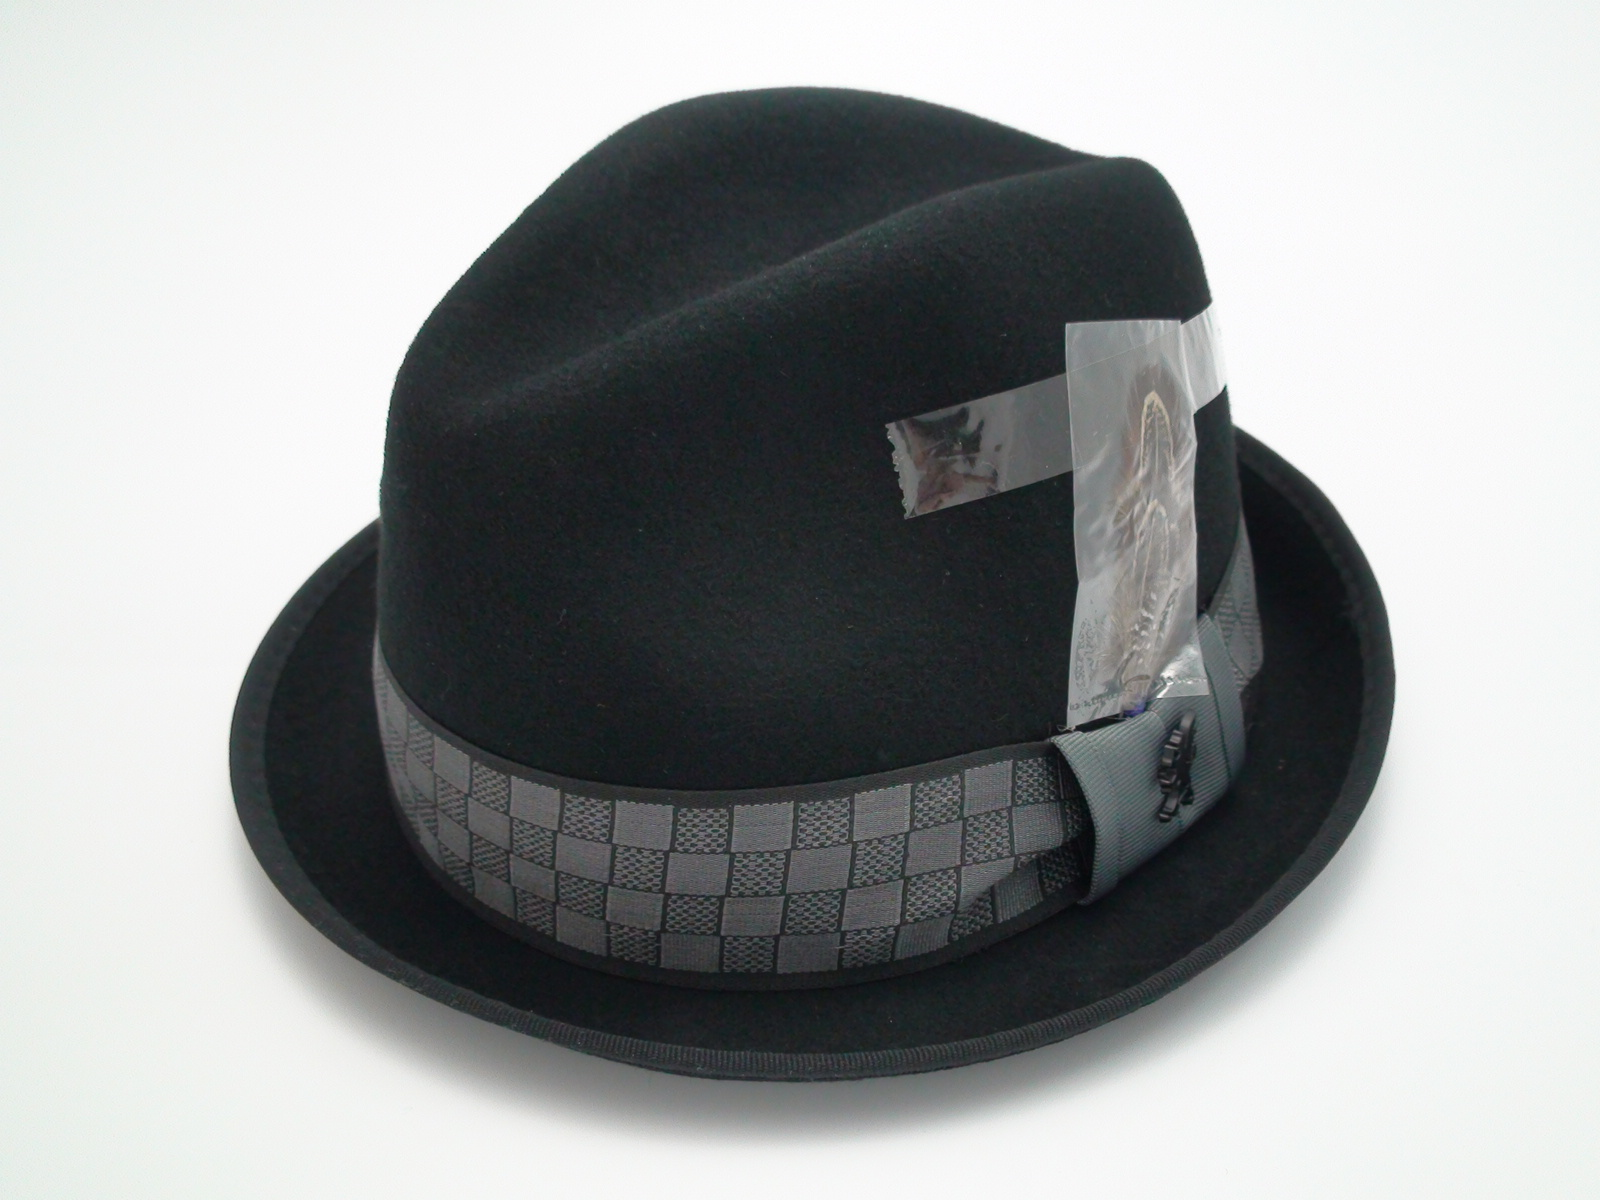 NEW Stacy Adams Fedora Crushable Black Wool Stingy Brim Trilby Hat Size 7  1 8 (M) cbec3e14c2f